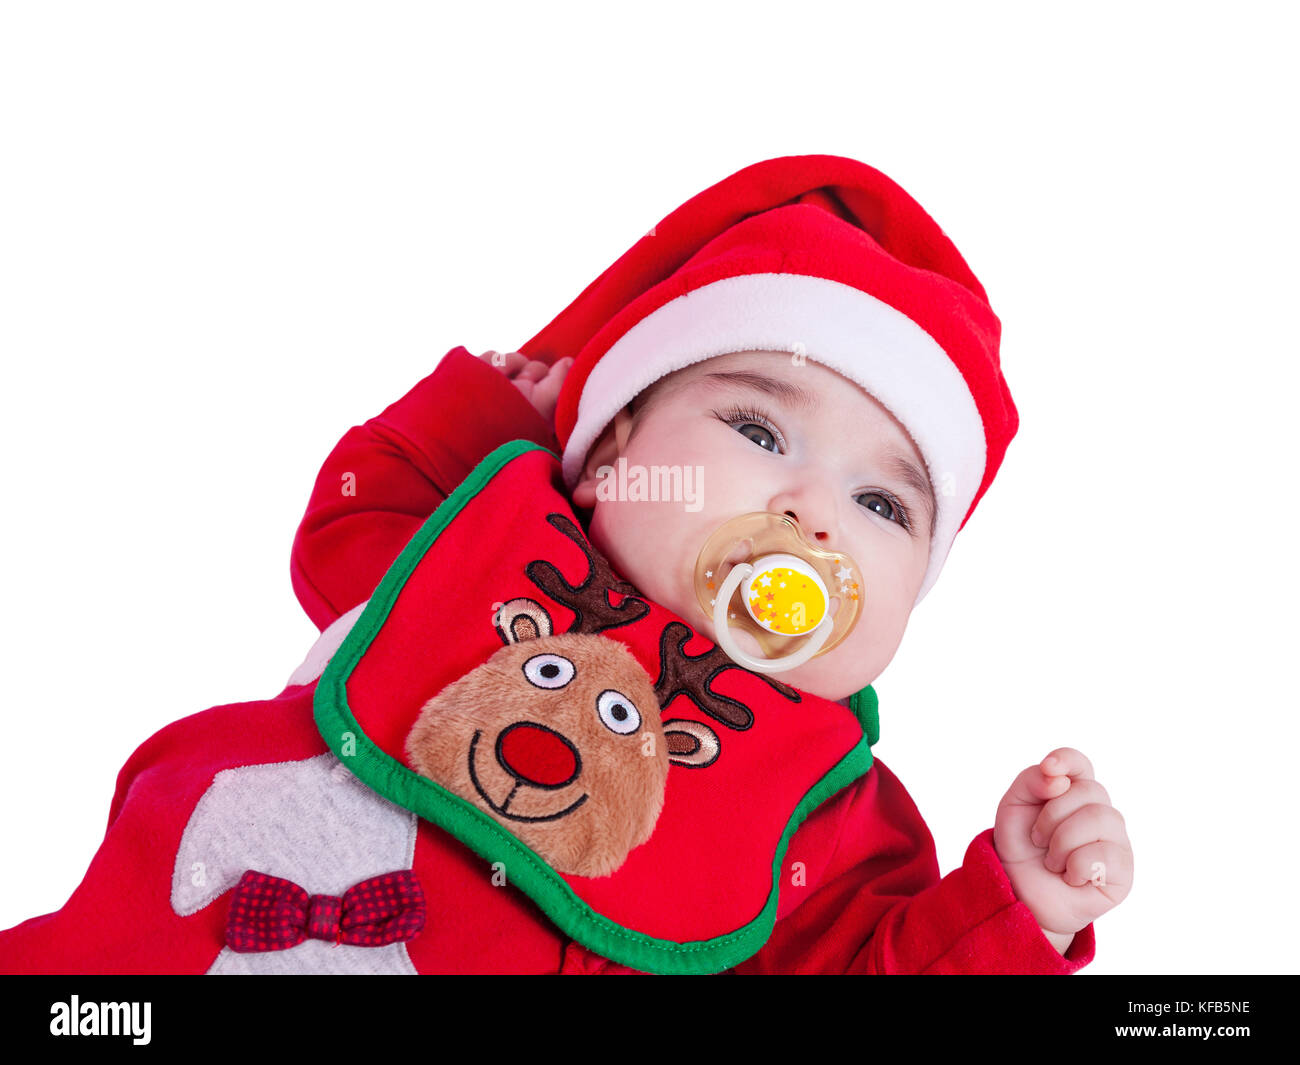 Baby girl with pacifier or dummy, red babygrow or onesie, Rudolph reindeer bib, Santa Claus hat for Christmas. Isolated - Stock Image